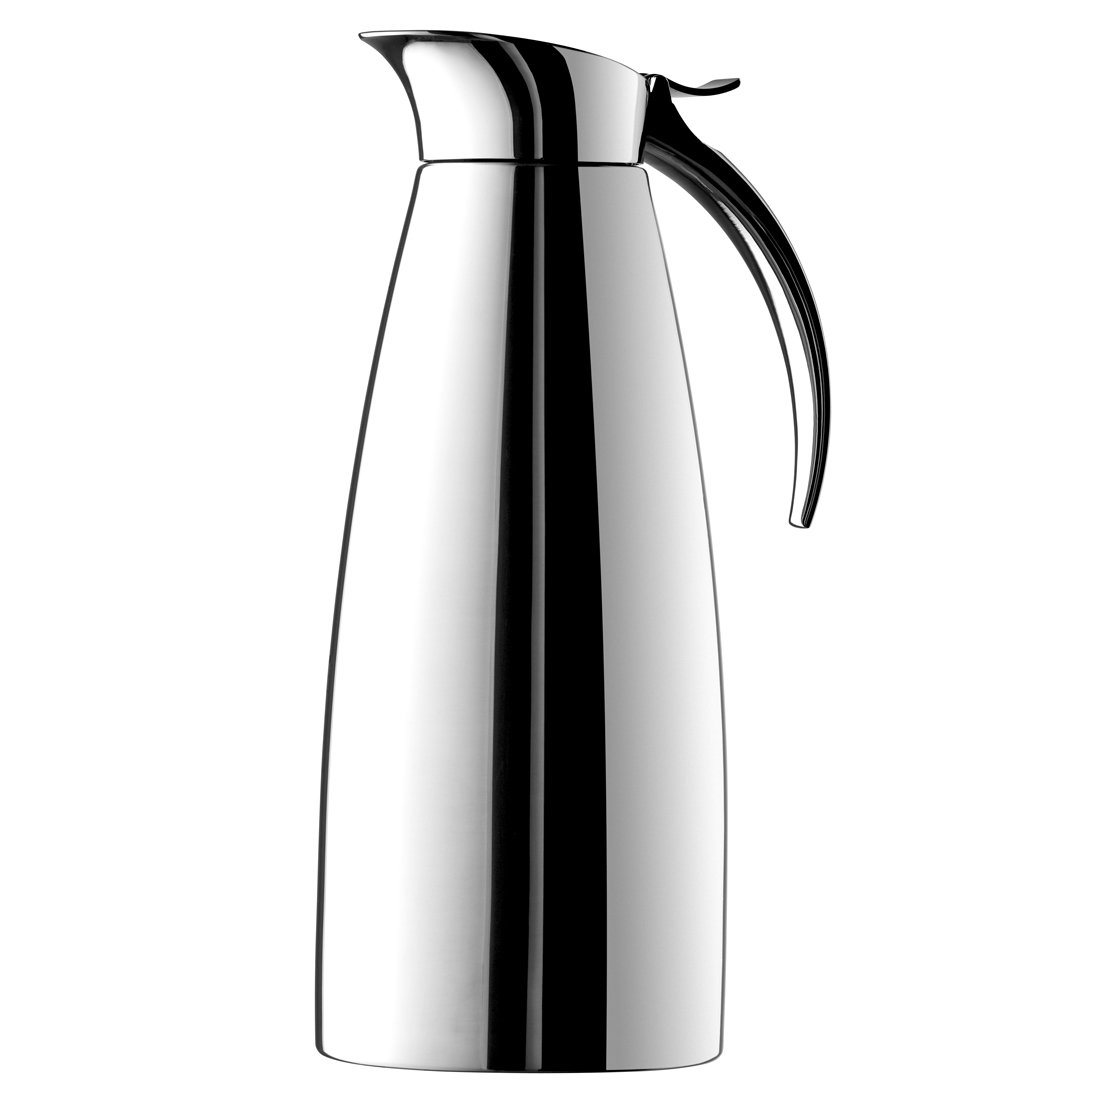 Emsa Eleganza Stainless Steel Insulated Carafe, 34-Ounce by EMSA